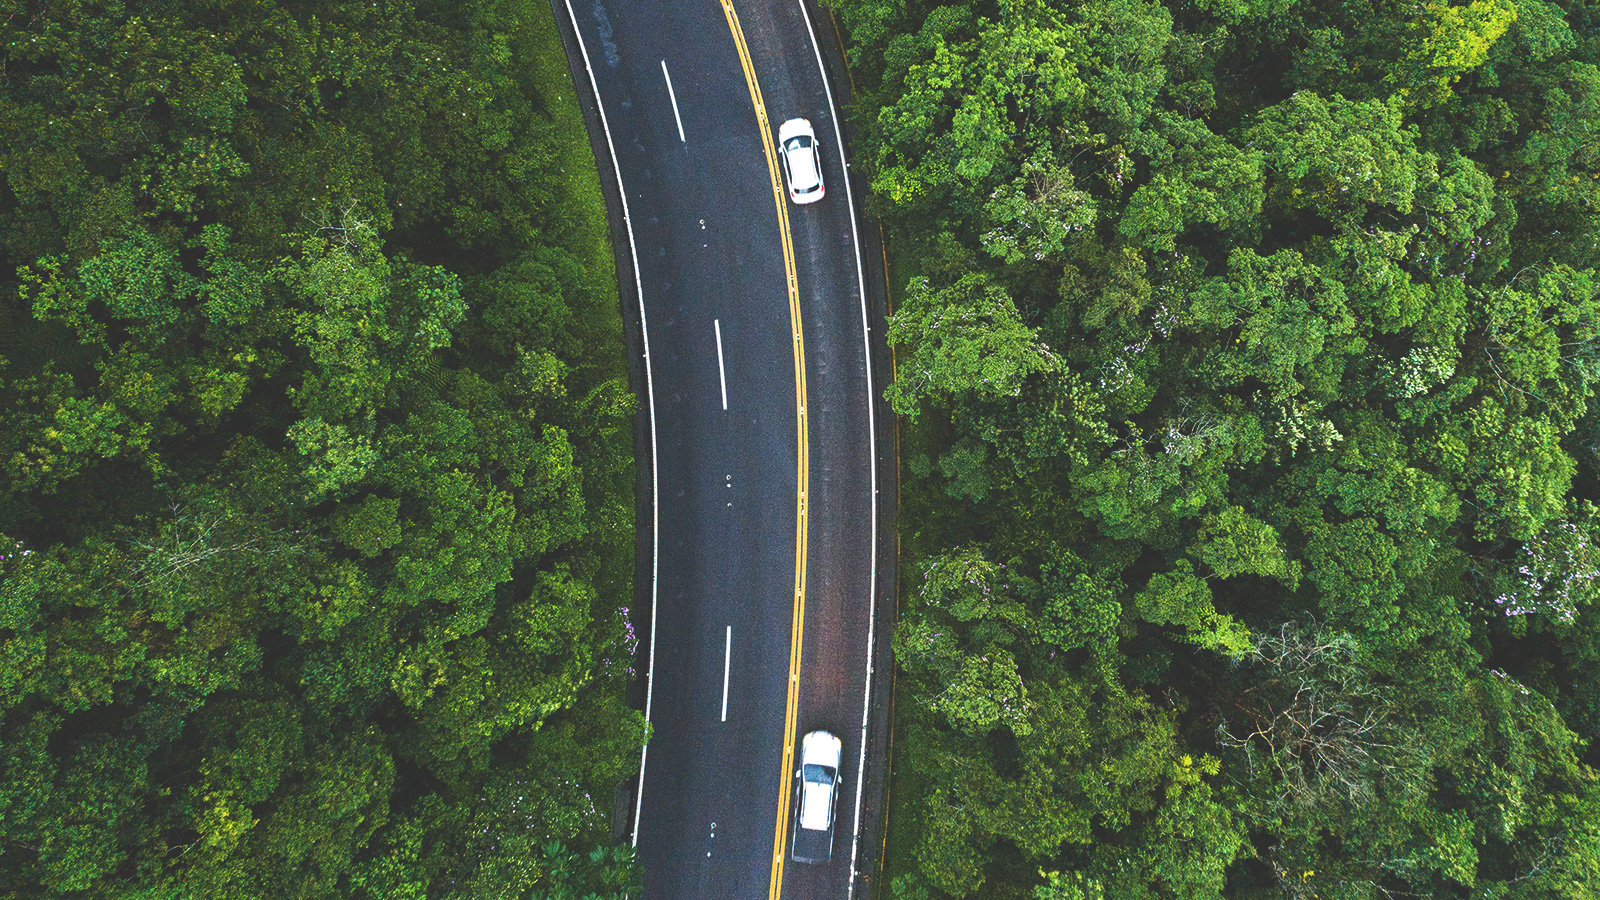 cars driving on forest lined roads